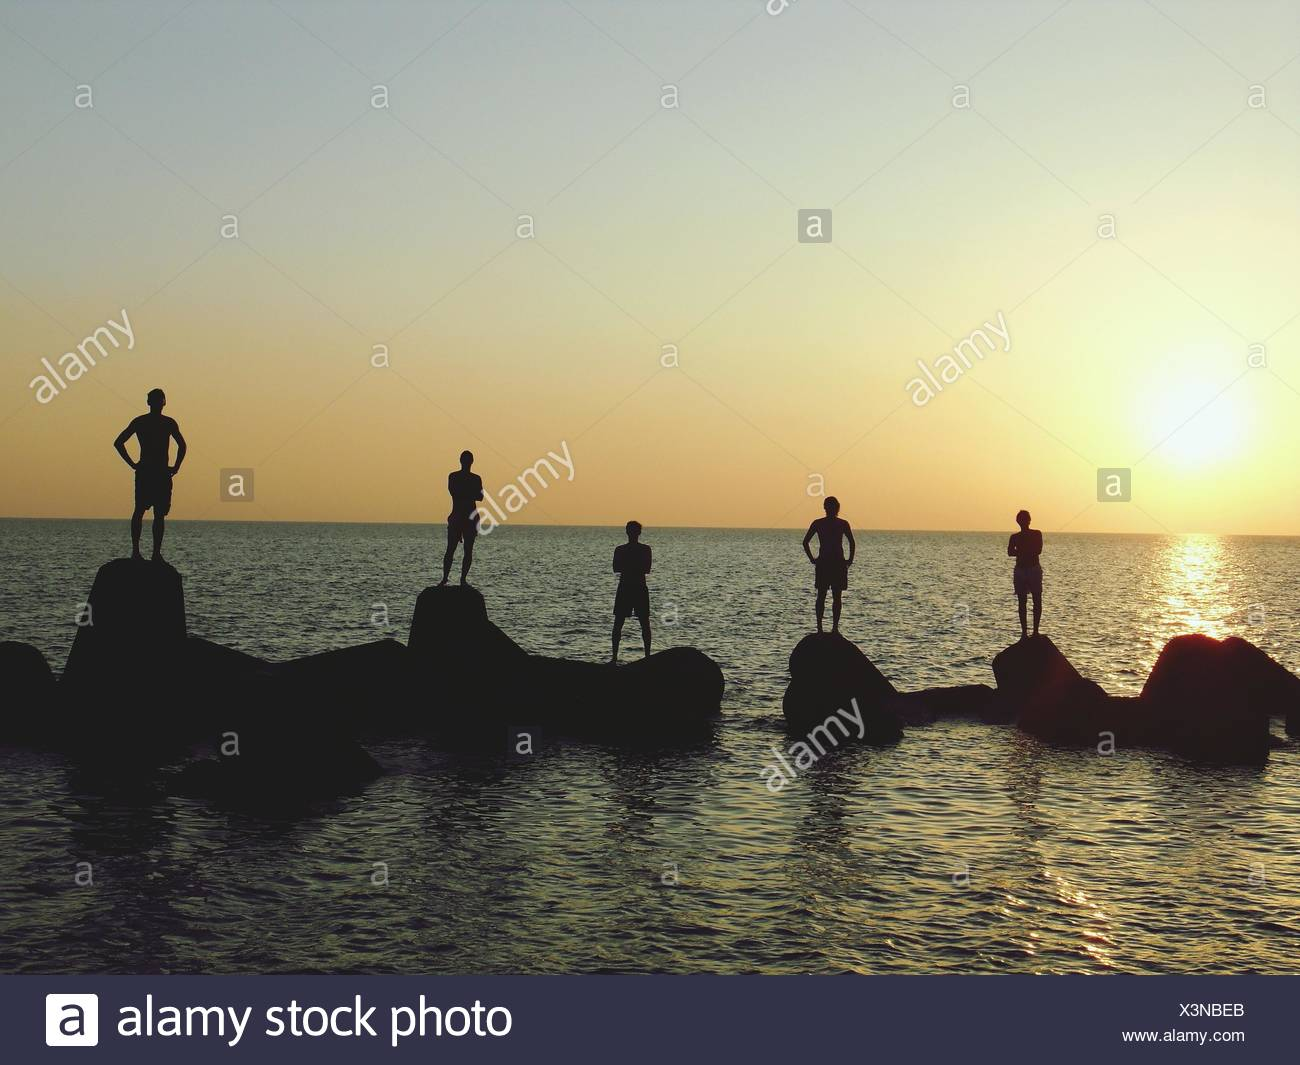 Group Of Men Standing On Breakwaters - Stock Image